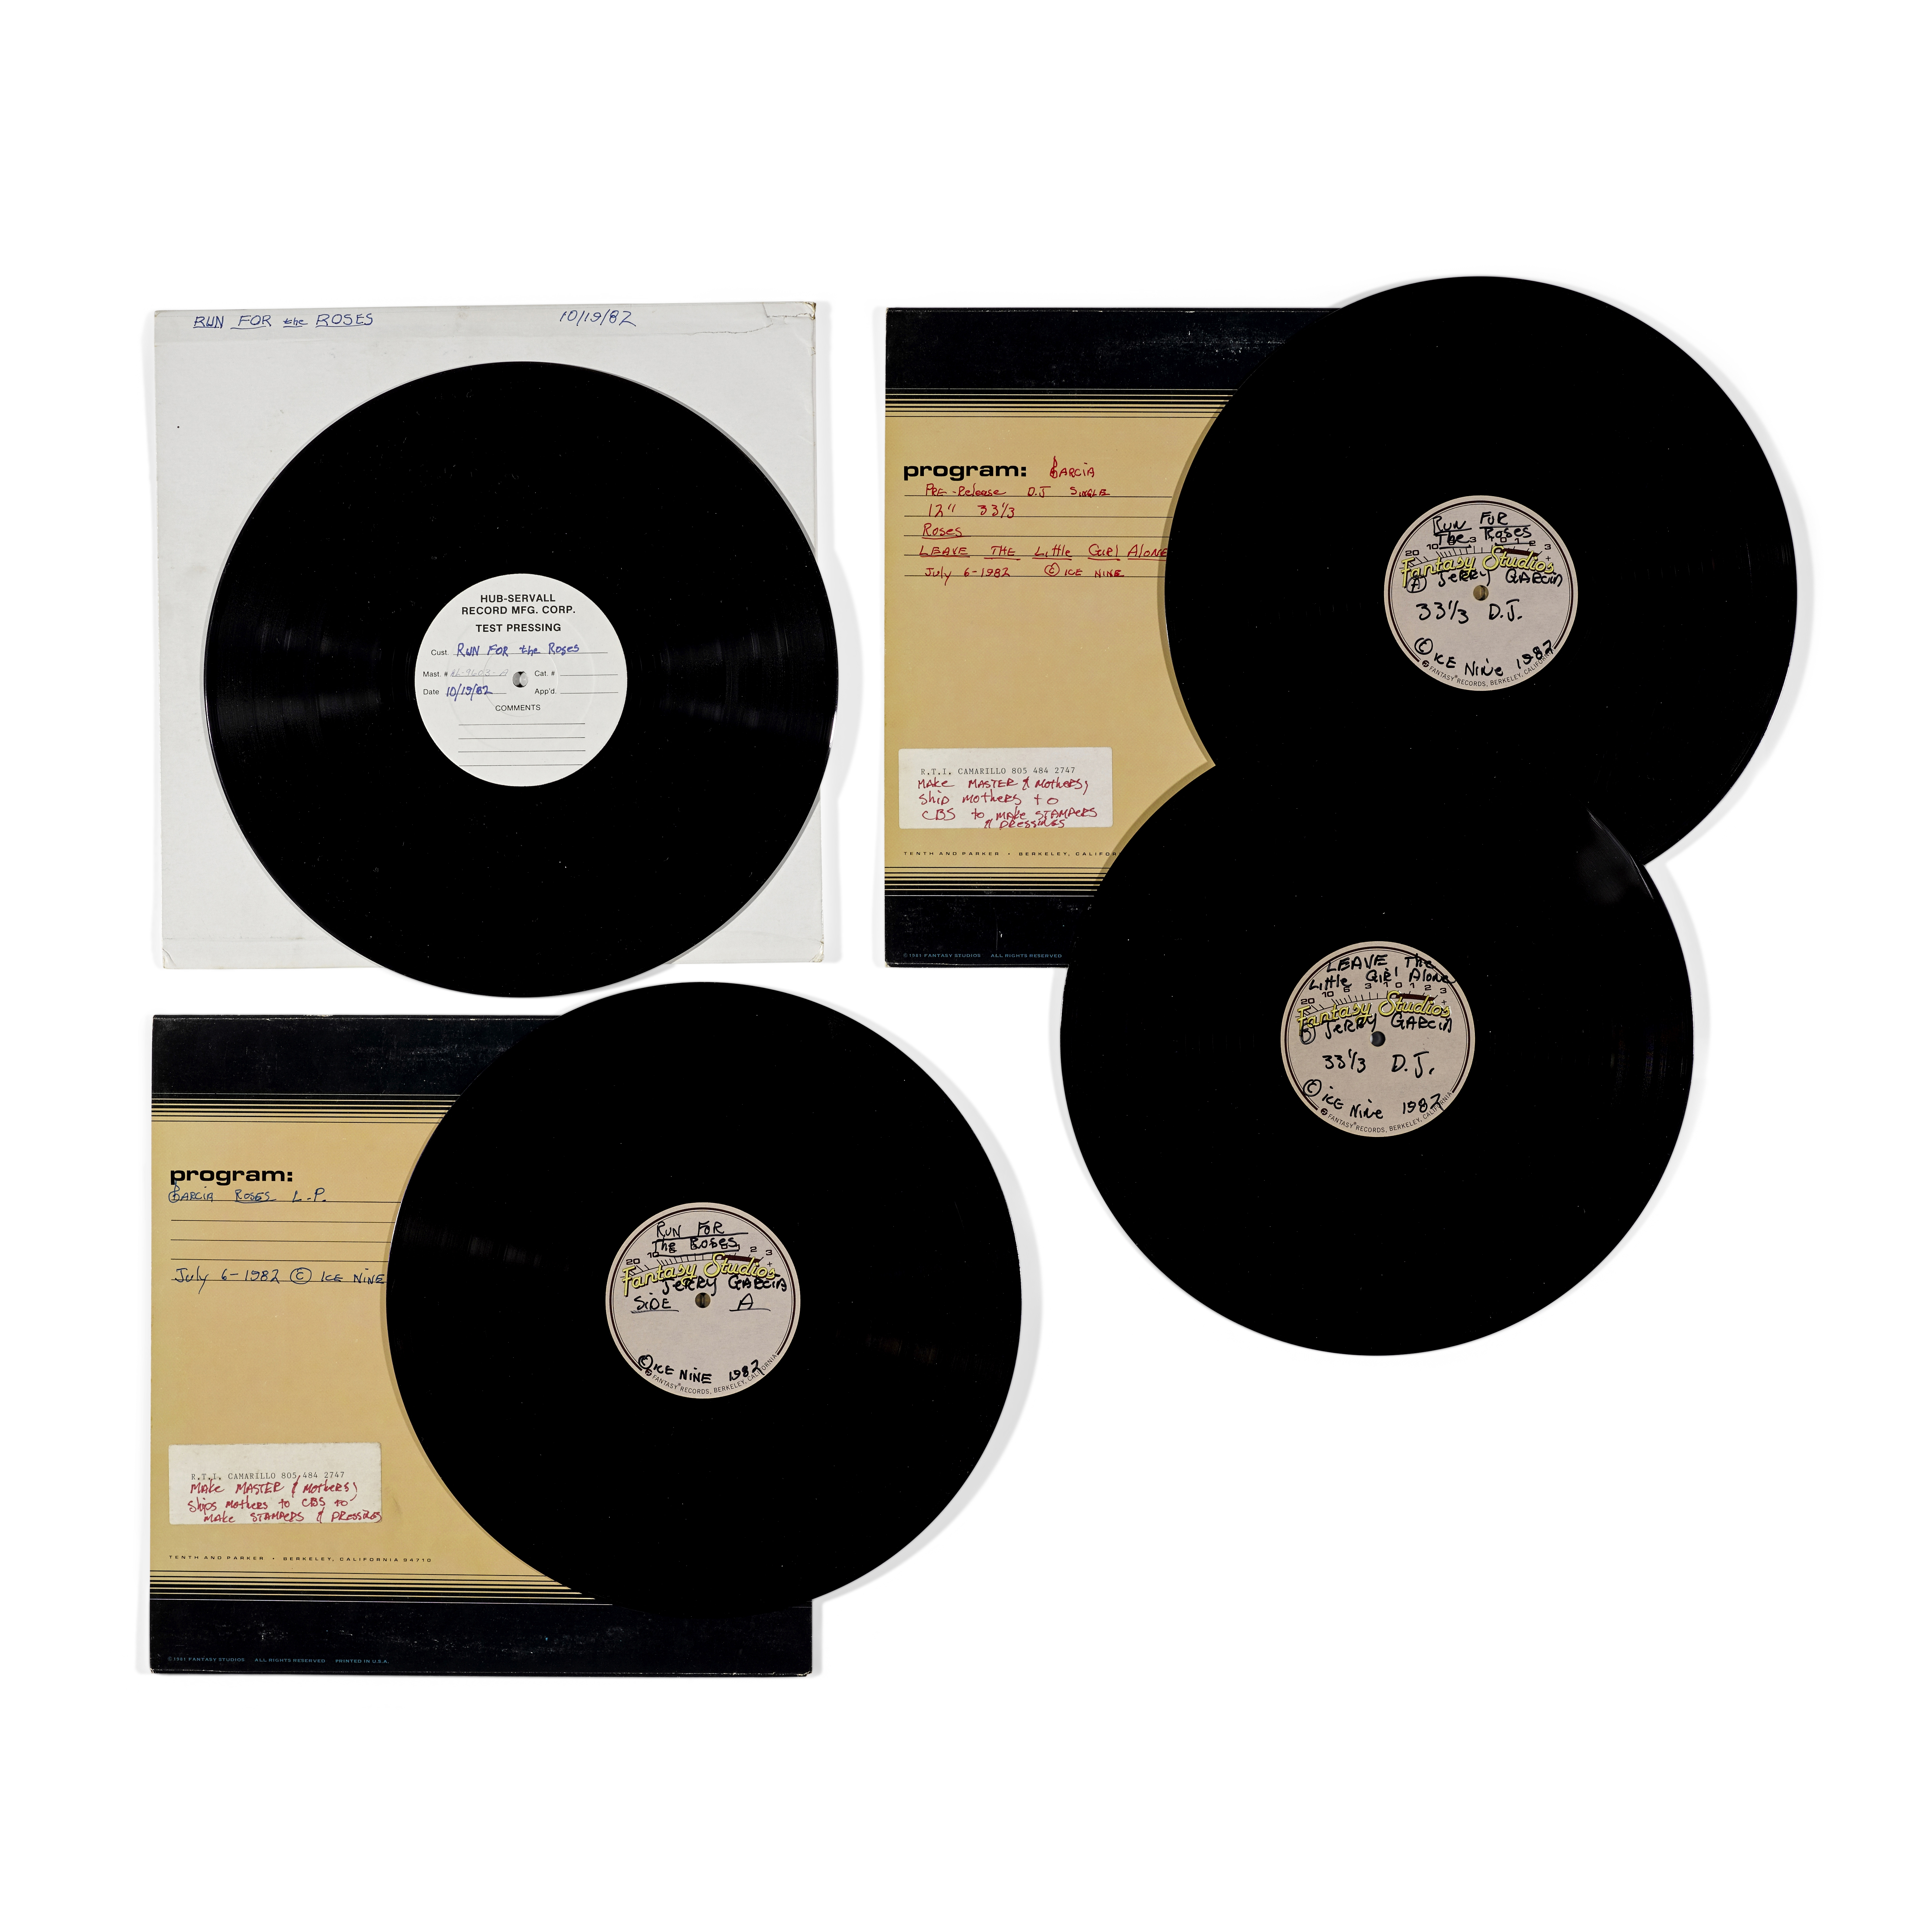 Lot 344 - A JERRY GARCIA ACETATE RECORDING OF THE ALBUM RUN FOR THE ROSES AND THREE OTHER RELATED RECORDING...